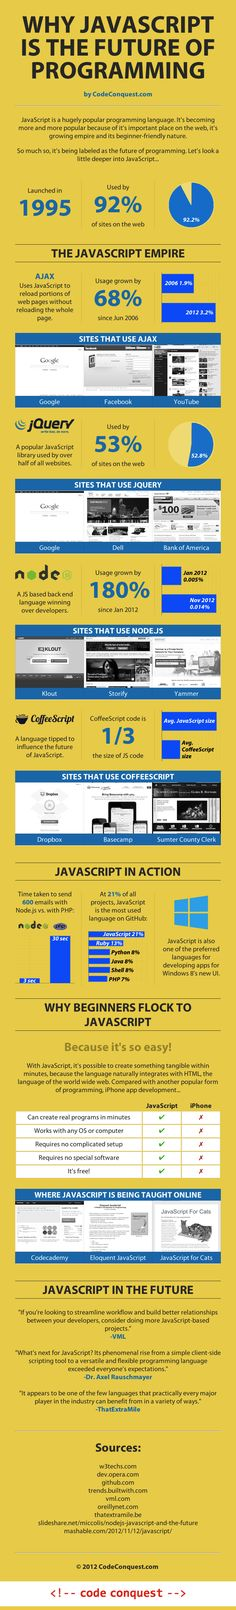 Why JavaScript is the Future of Programming? We are a Javascript bootcamp #codinghouse #javascript